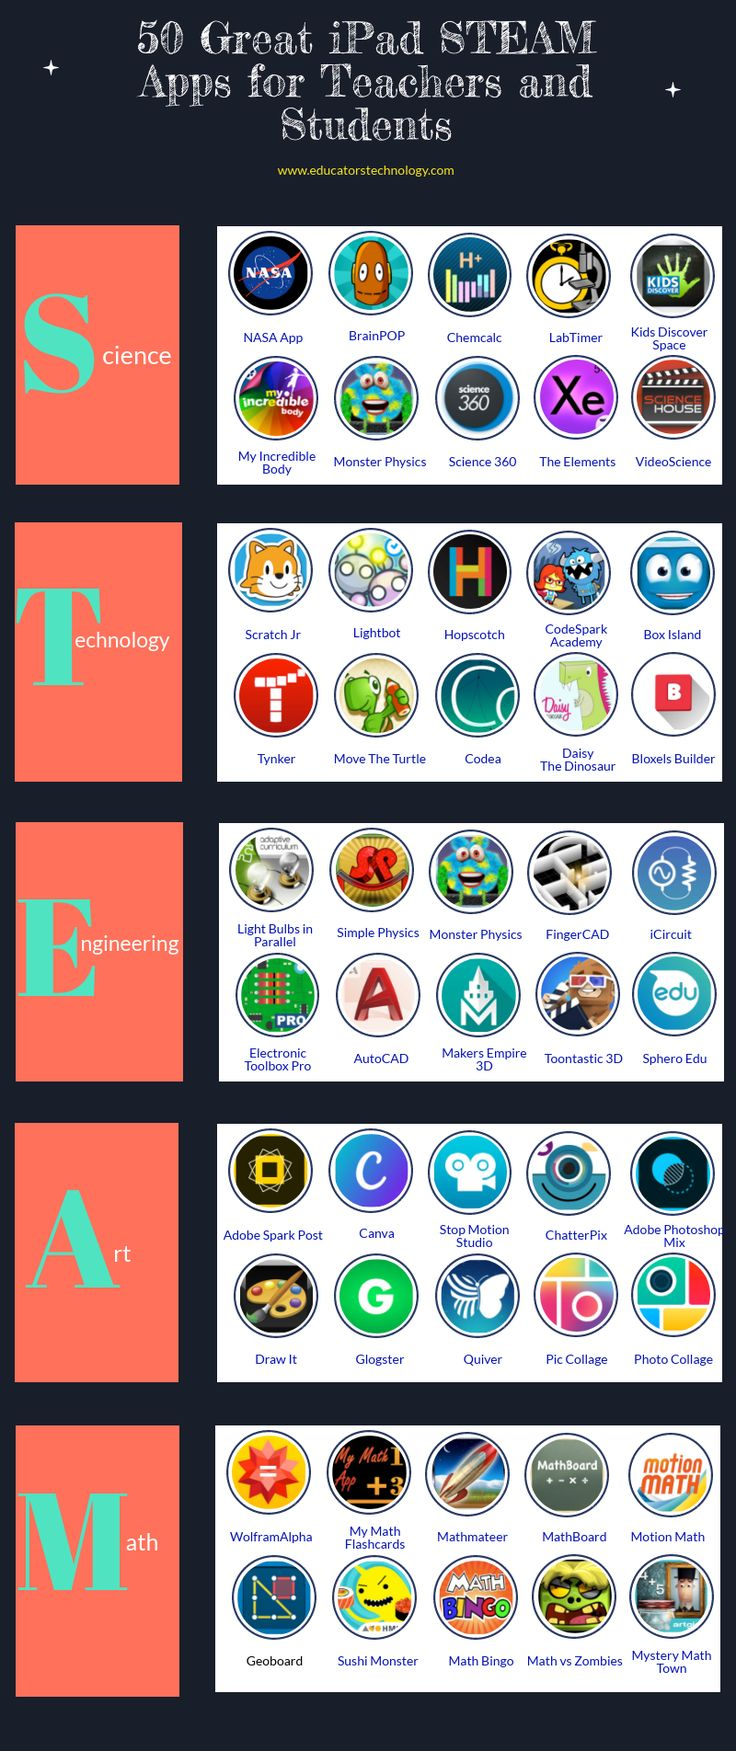 50 Great iPad STEAM Apps for Teachers and Students 2